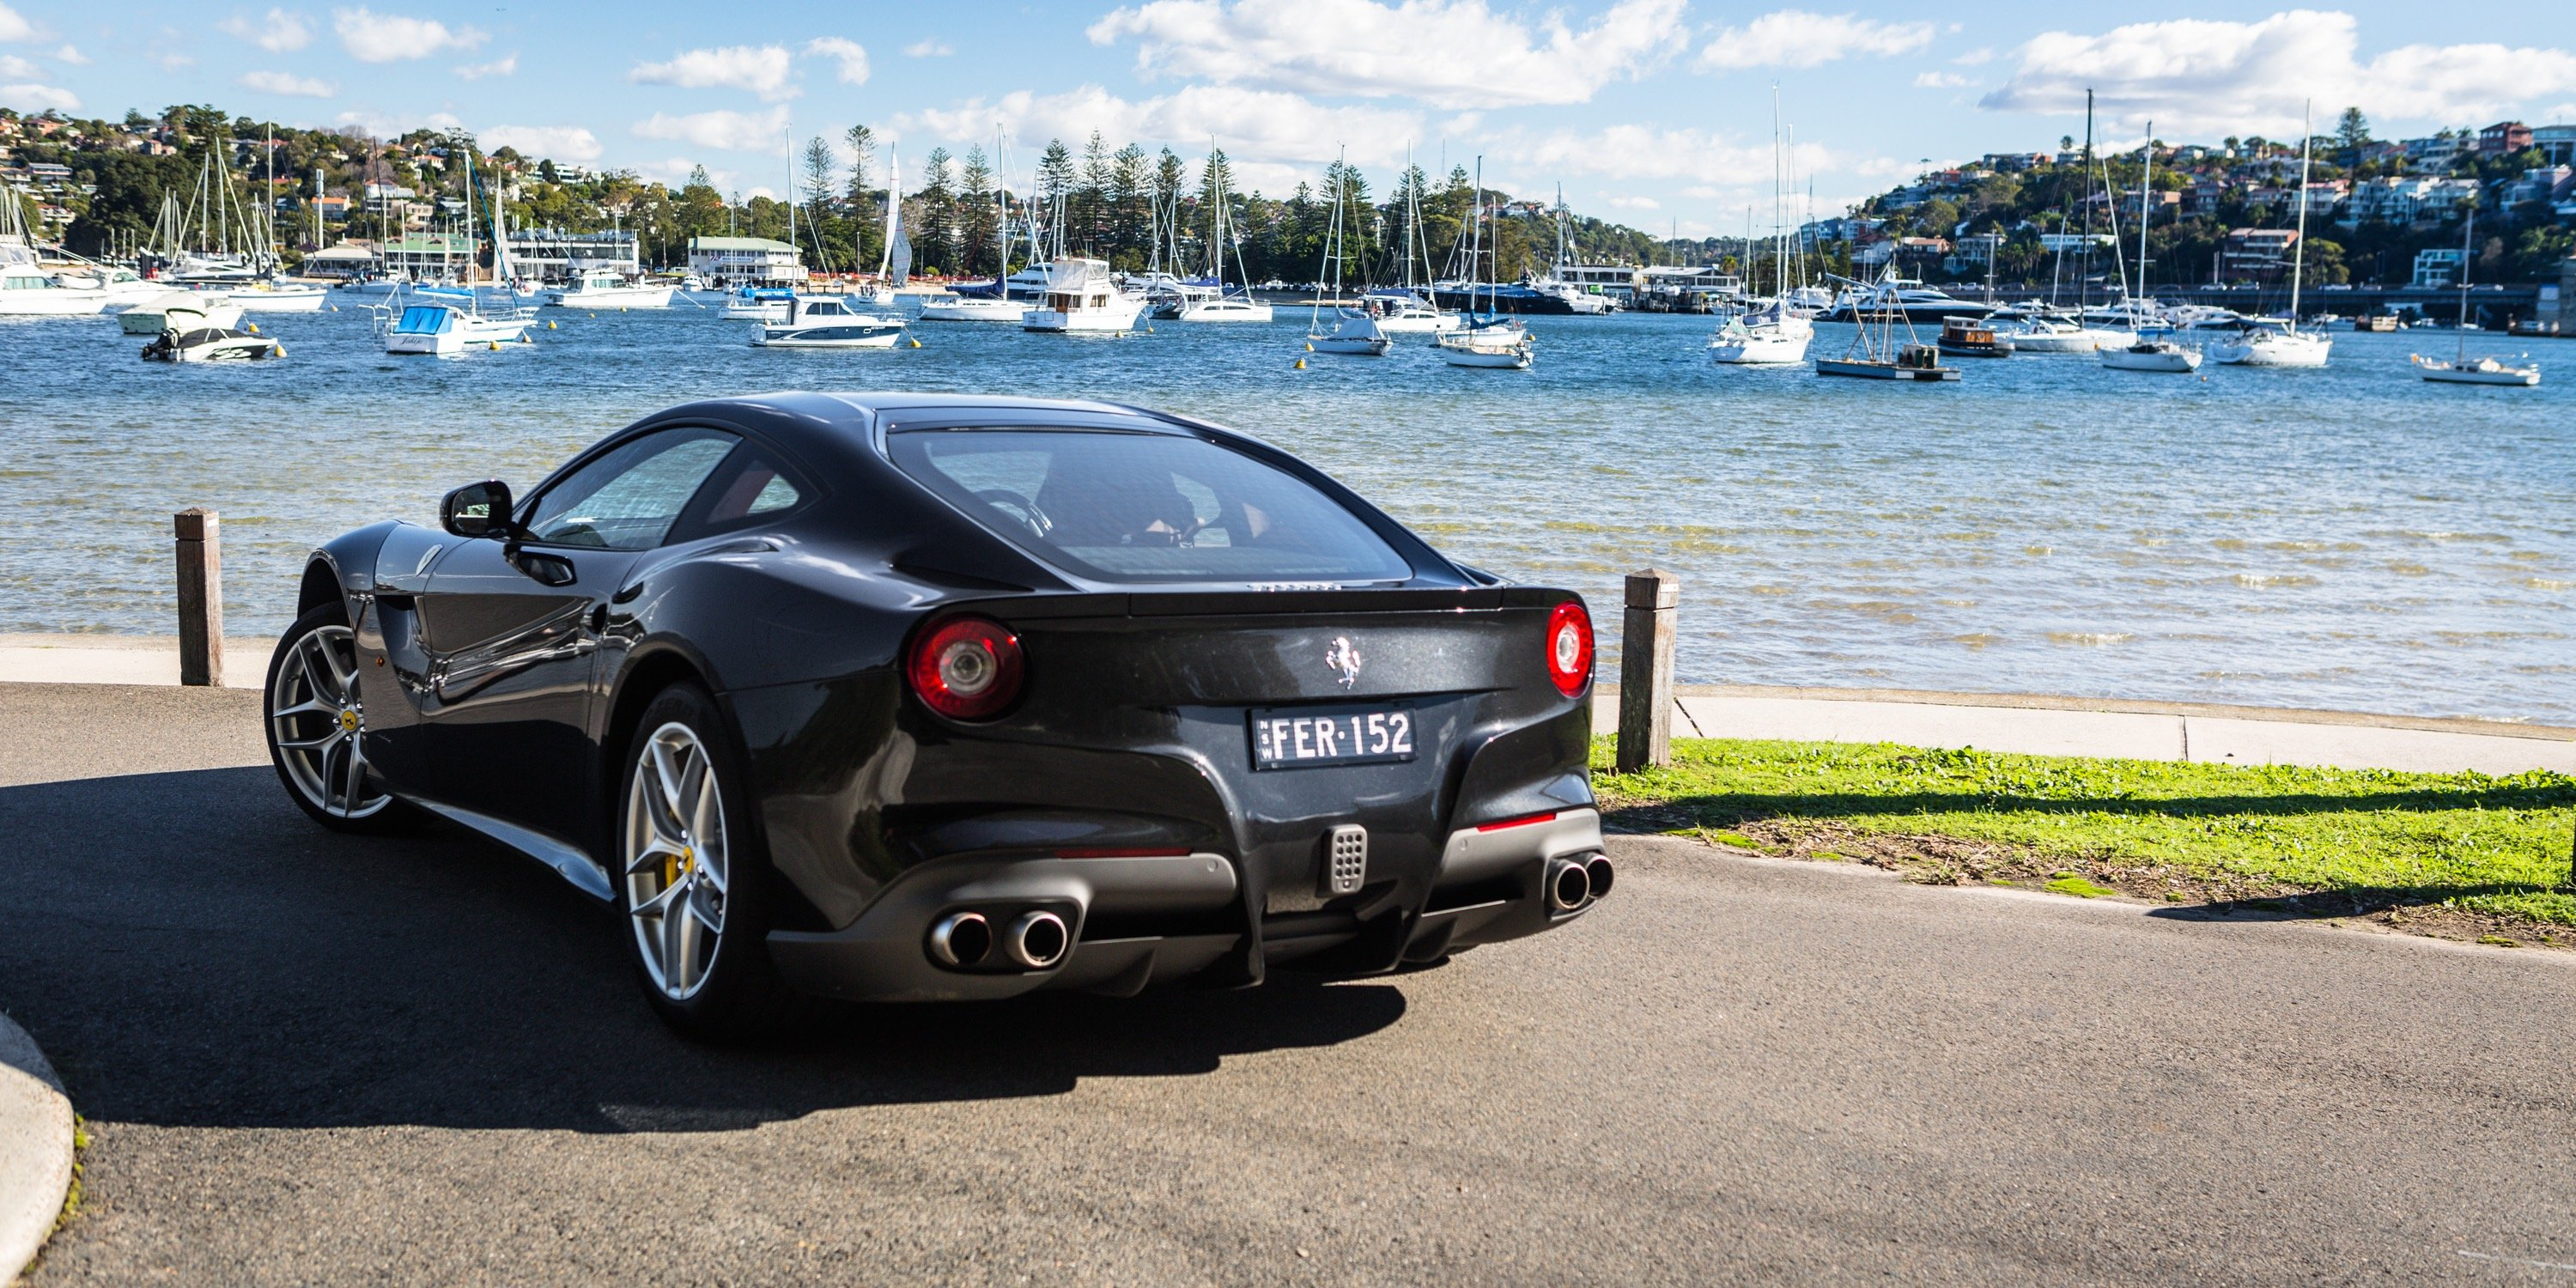 2016 ferrari f12 berlinetta review caradvice. Cars Review. Best American Auto & Cars Review